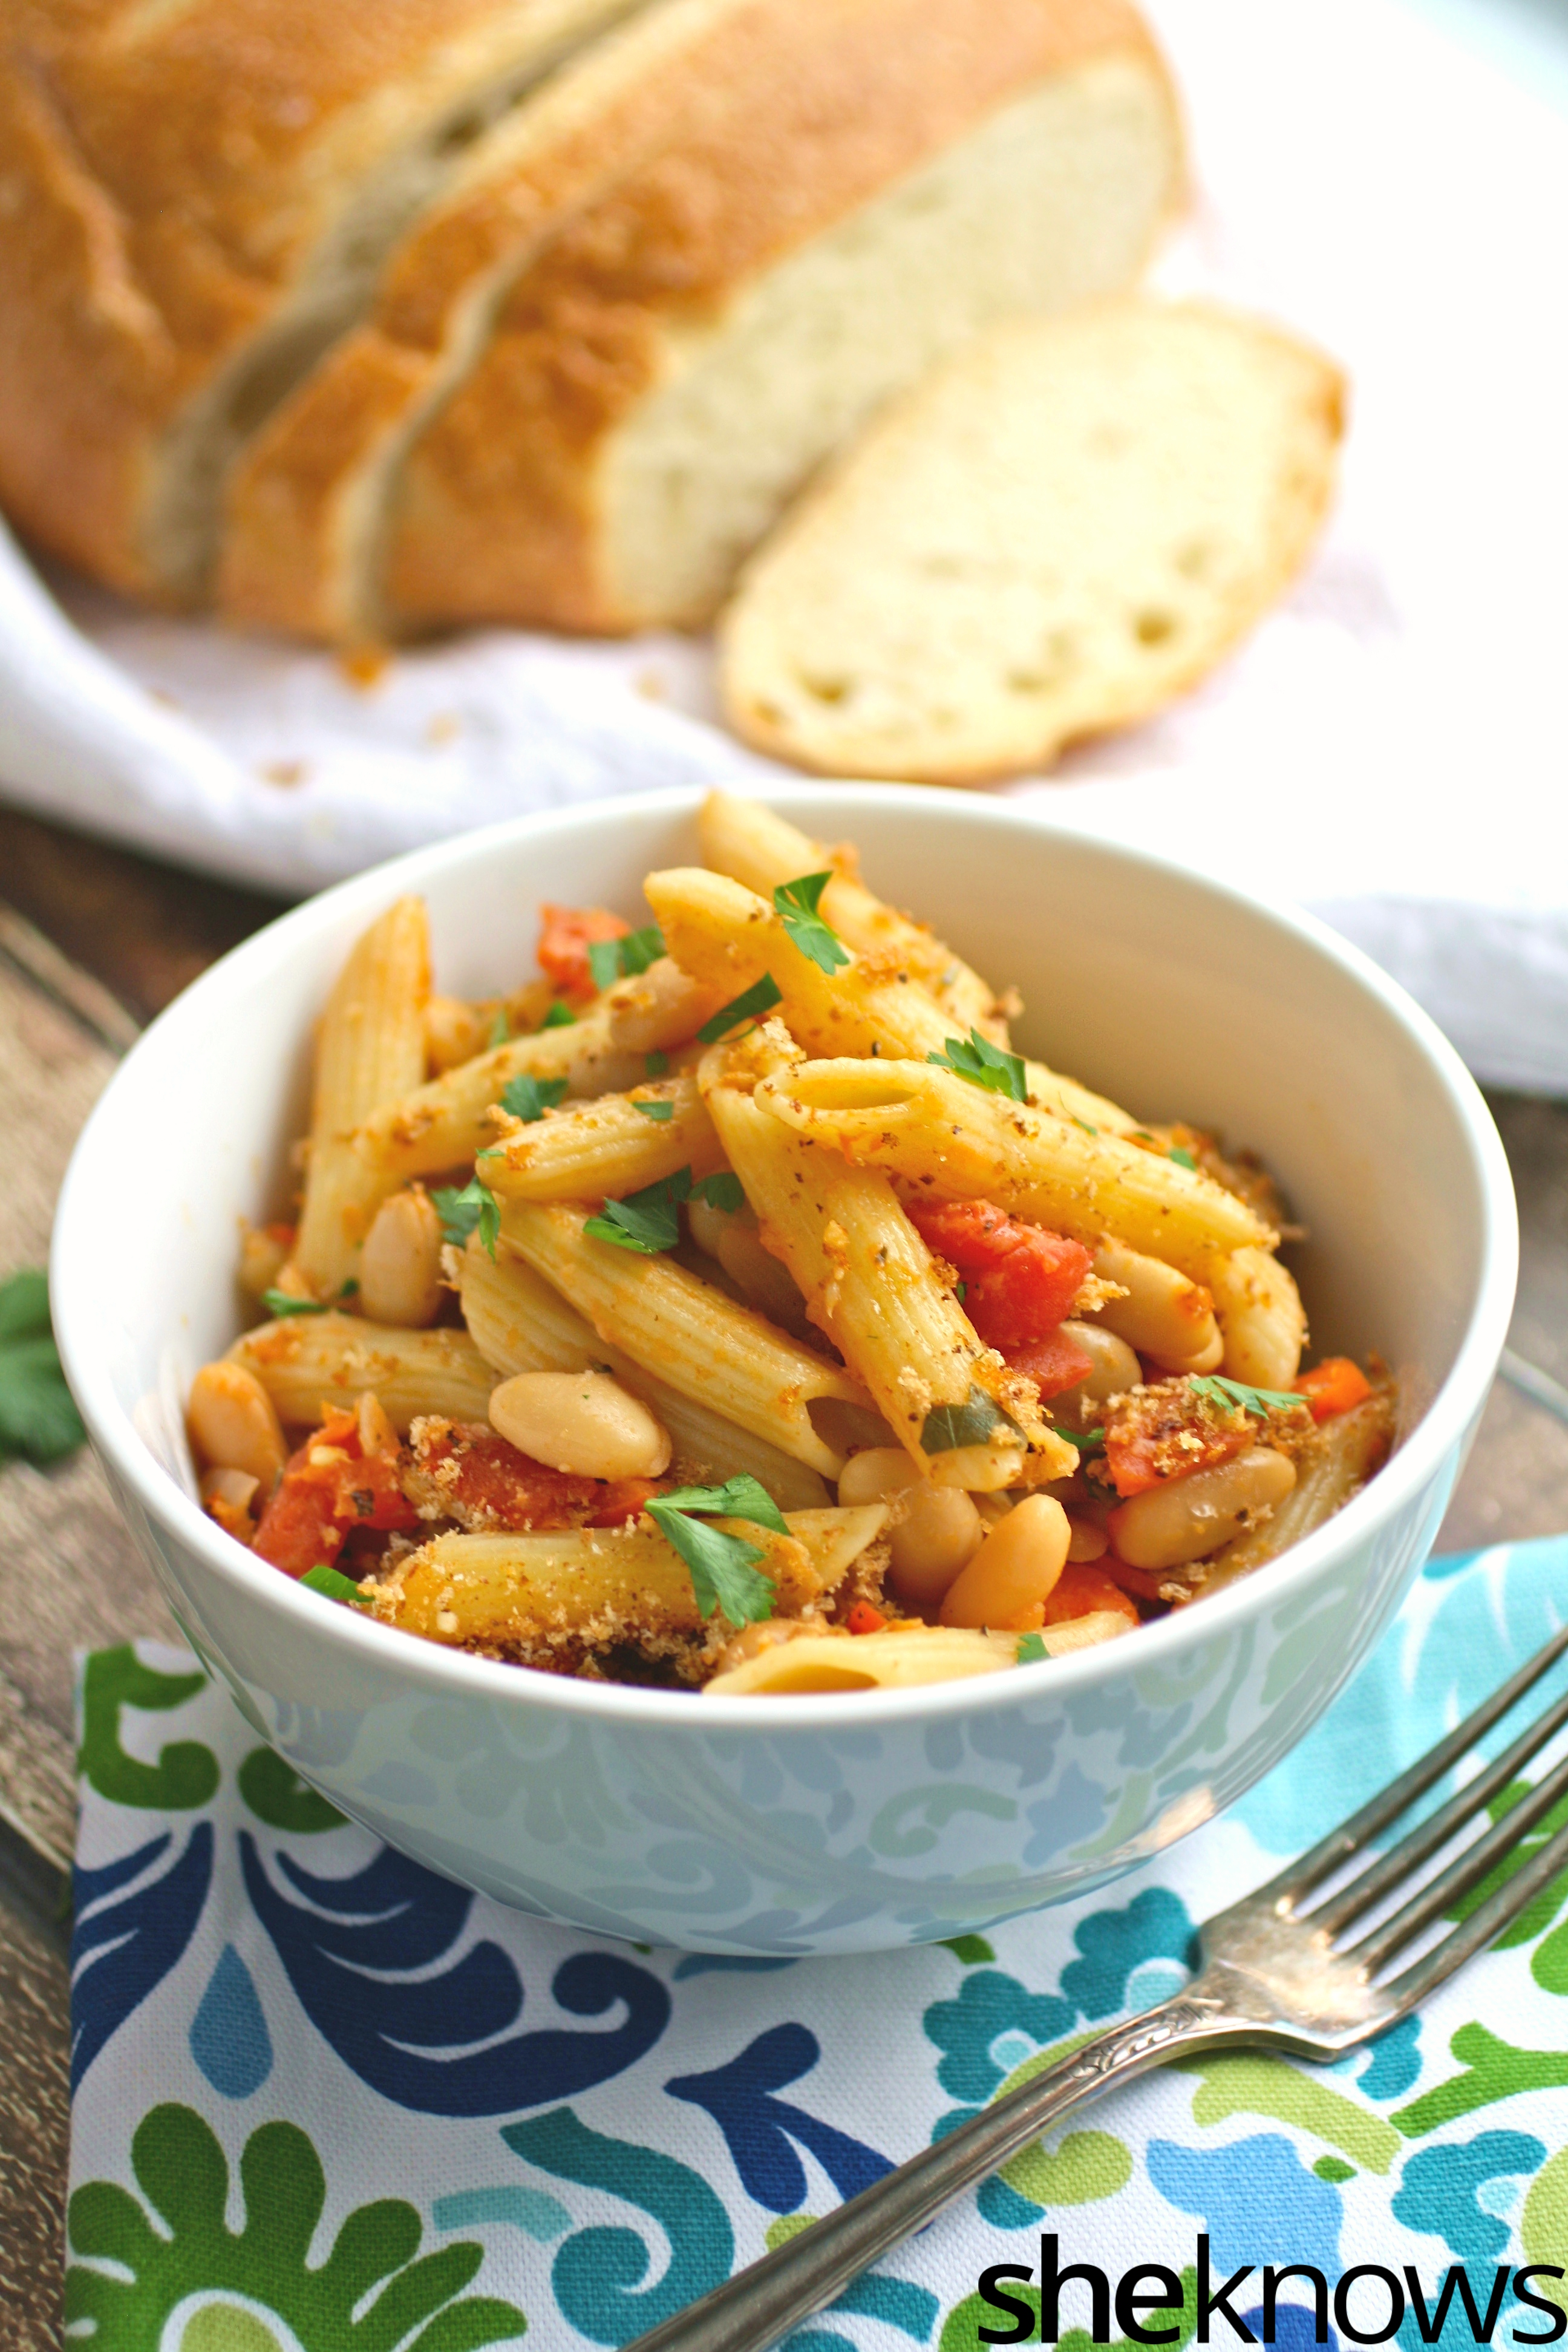 Baked pasta e fagioli (pasta and beans) makes a wonderful Meatless Monday meal